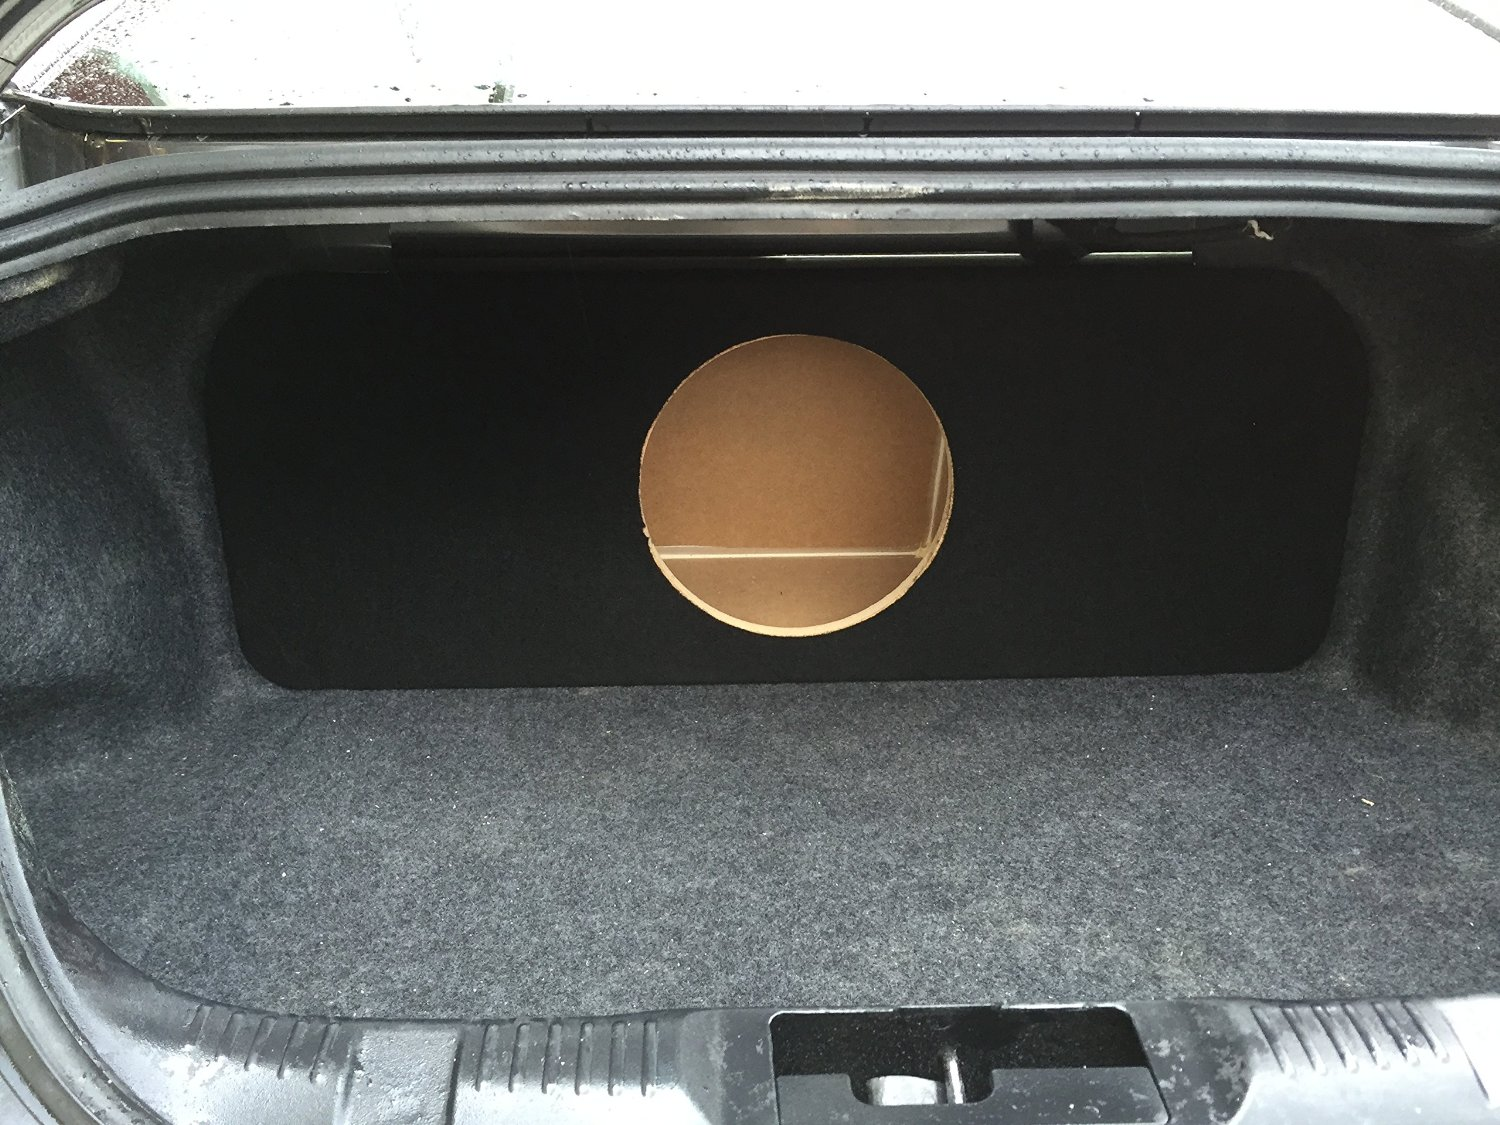 "Zenclosures 2015-2016 Mustang 1-10"" Subwoofer Box Rear Fire - BLACK, Version 1"